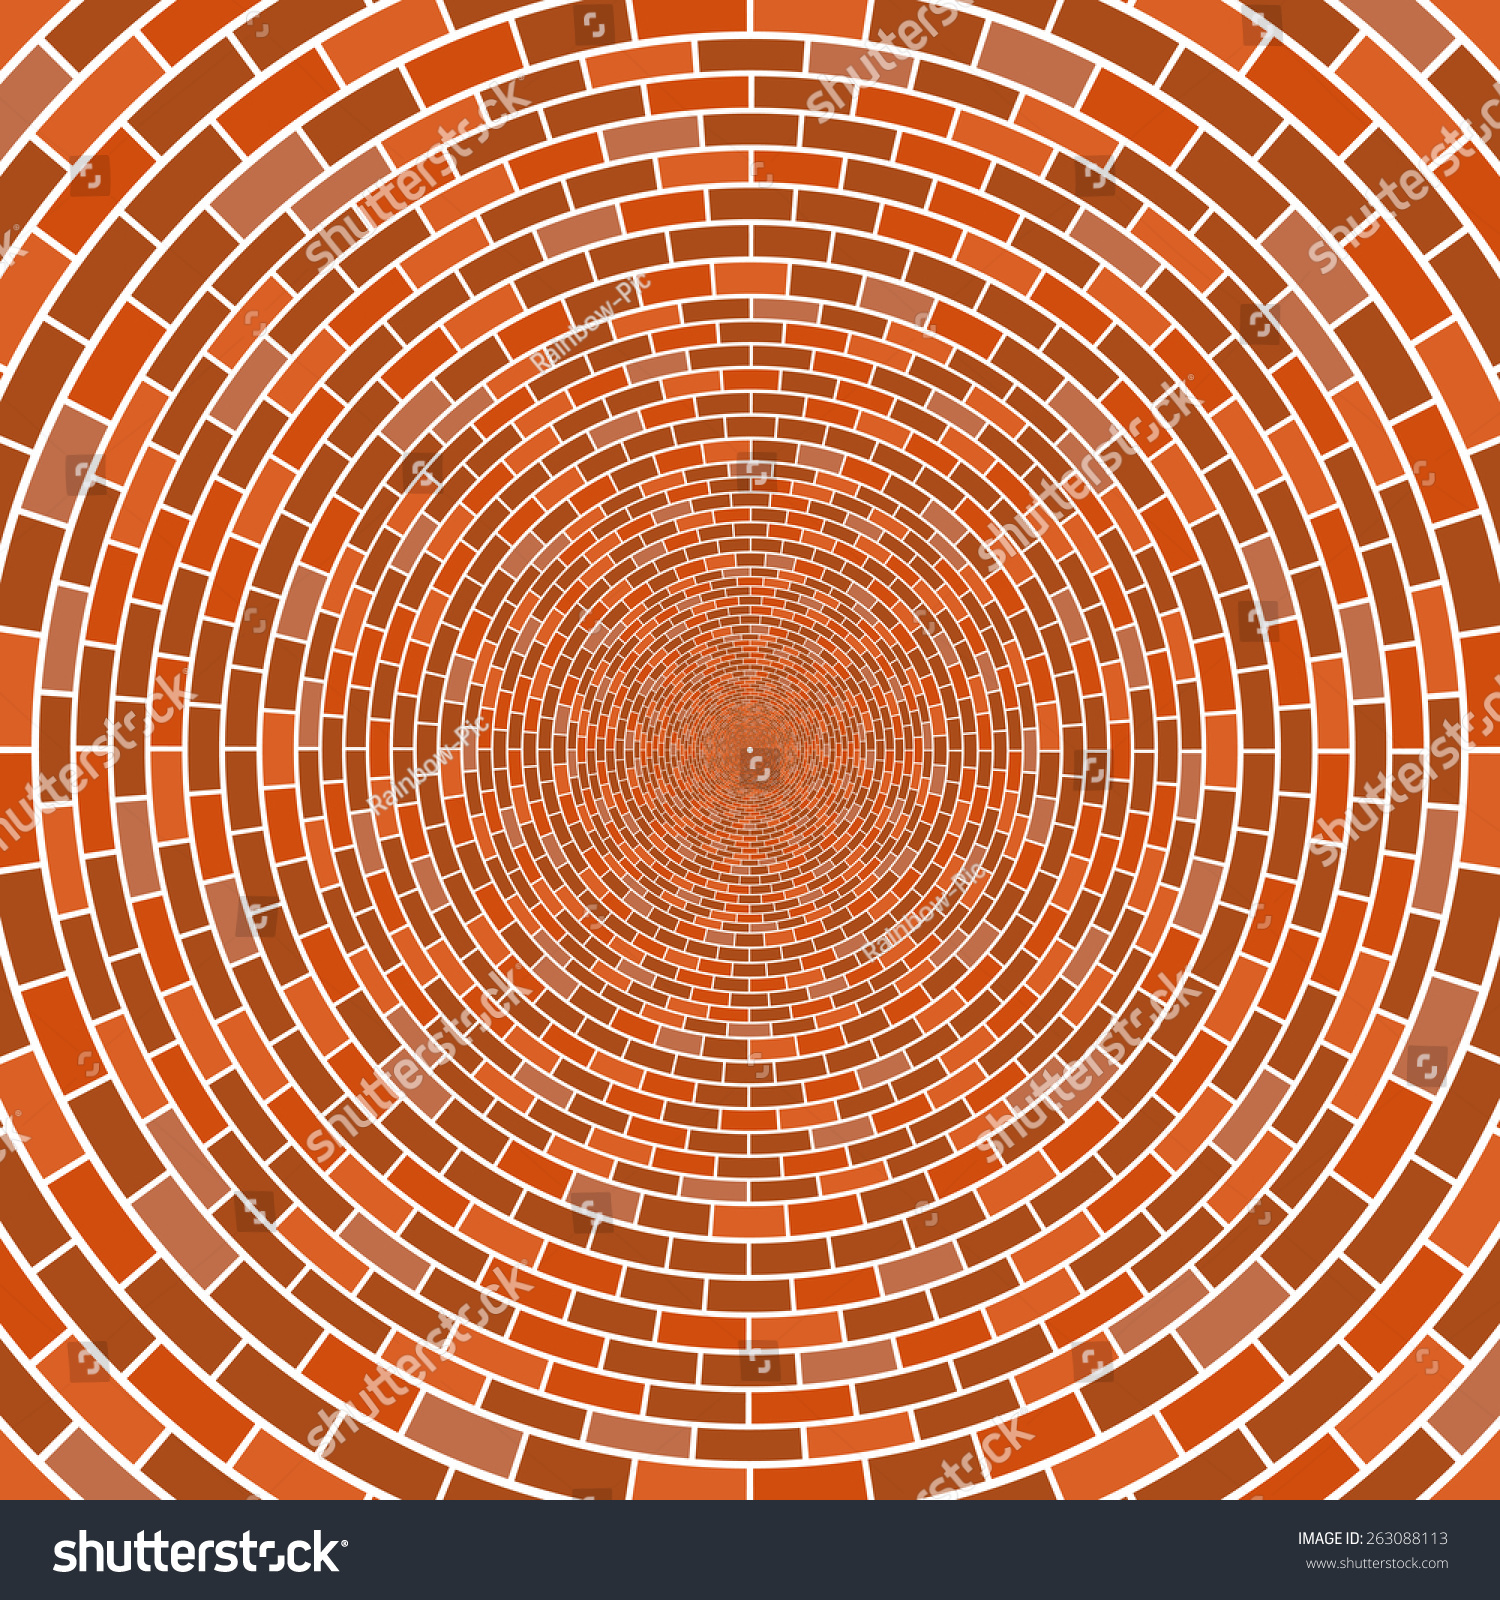 Brick Vector Picture Brick Veneers: Abstract Architectural Brick Wall Circle Optical Stock